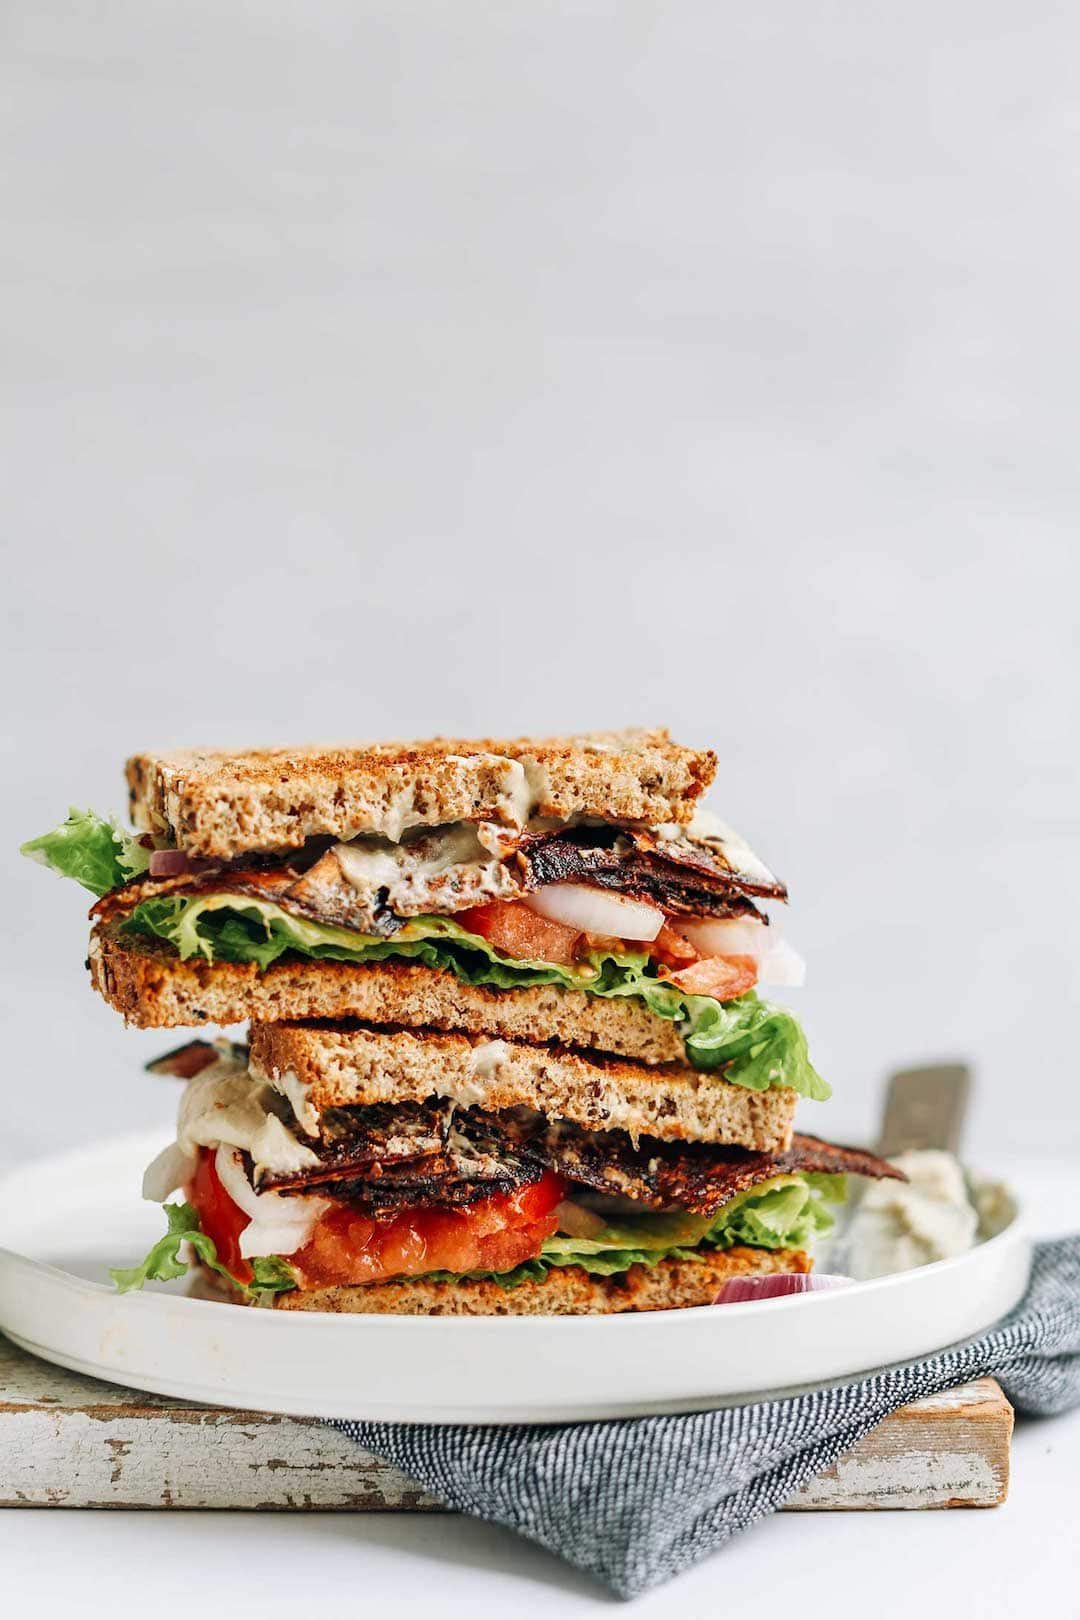 11 Yummy Plant Based Sandwiches - Plant Based BLT by Minimalist Baker